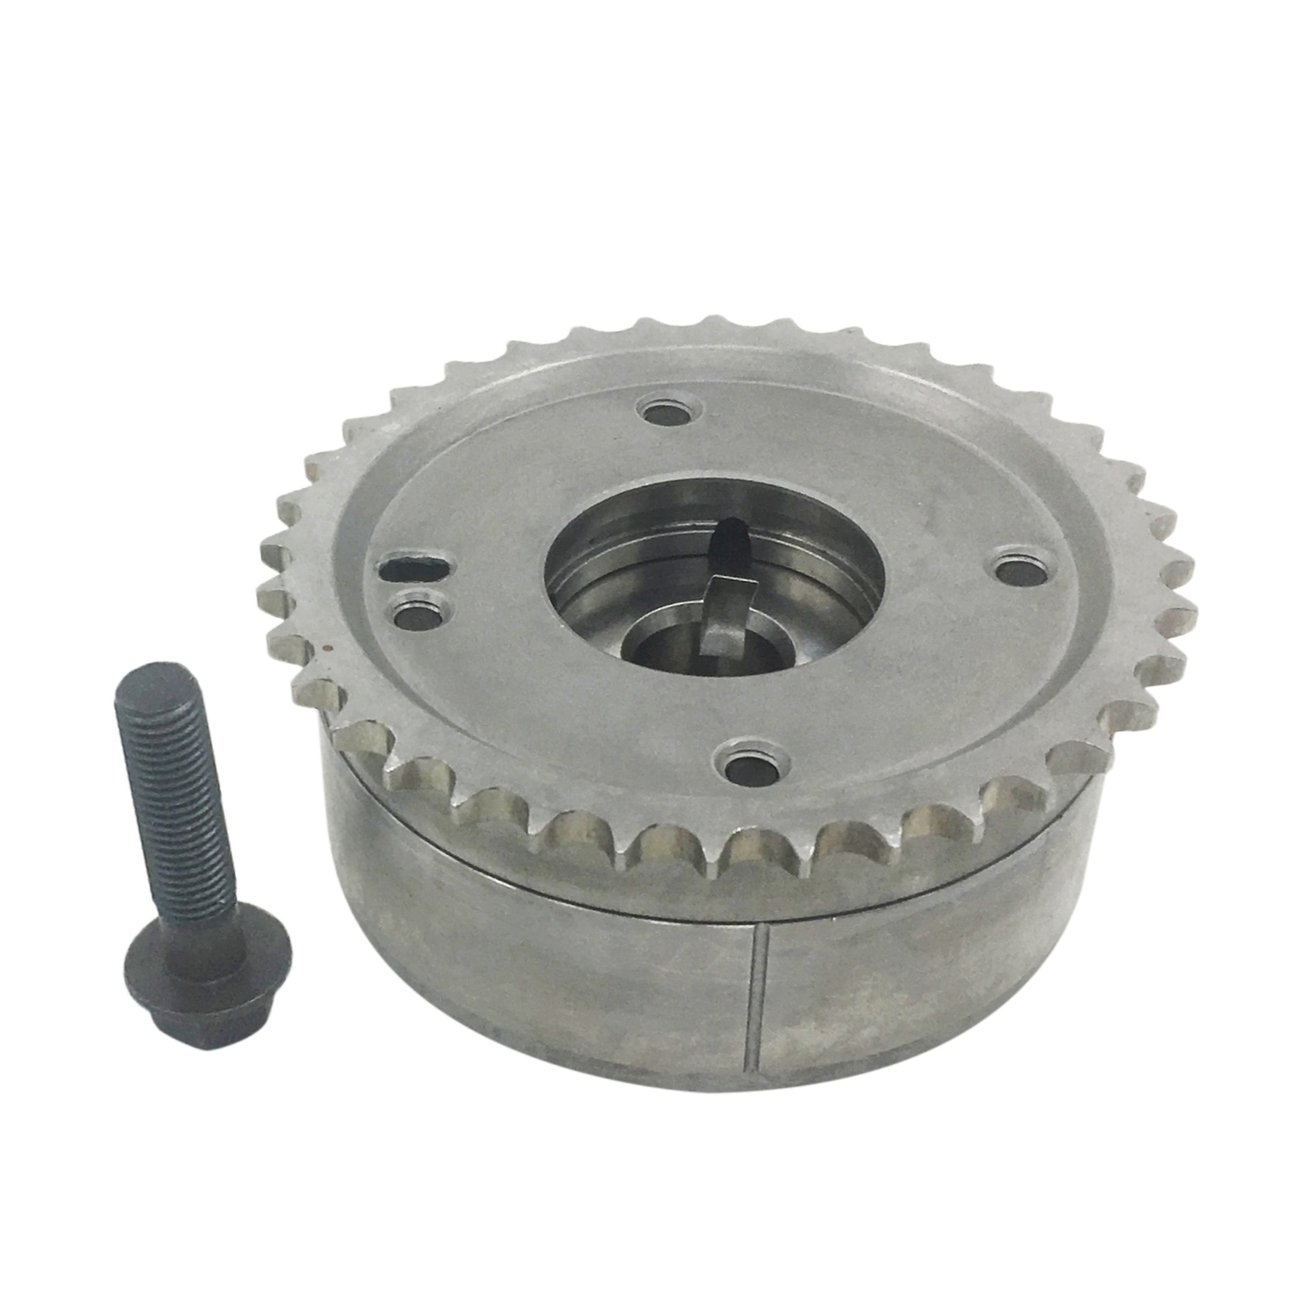 SKP SK917257 Engine Variable Timing Sprocket